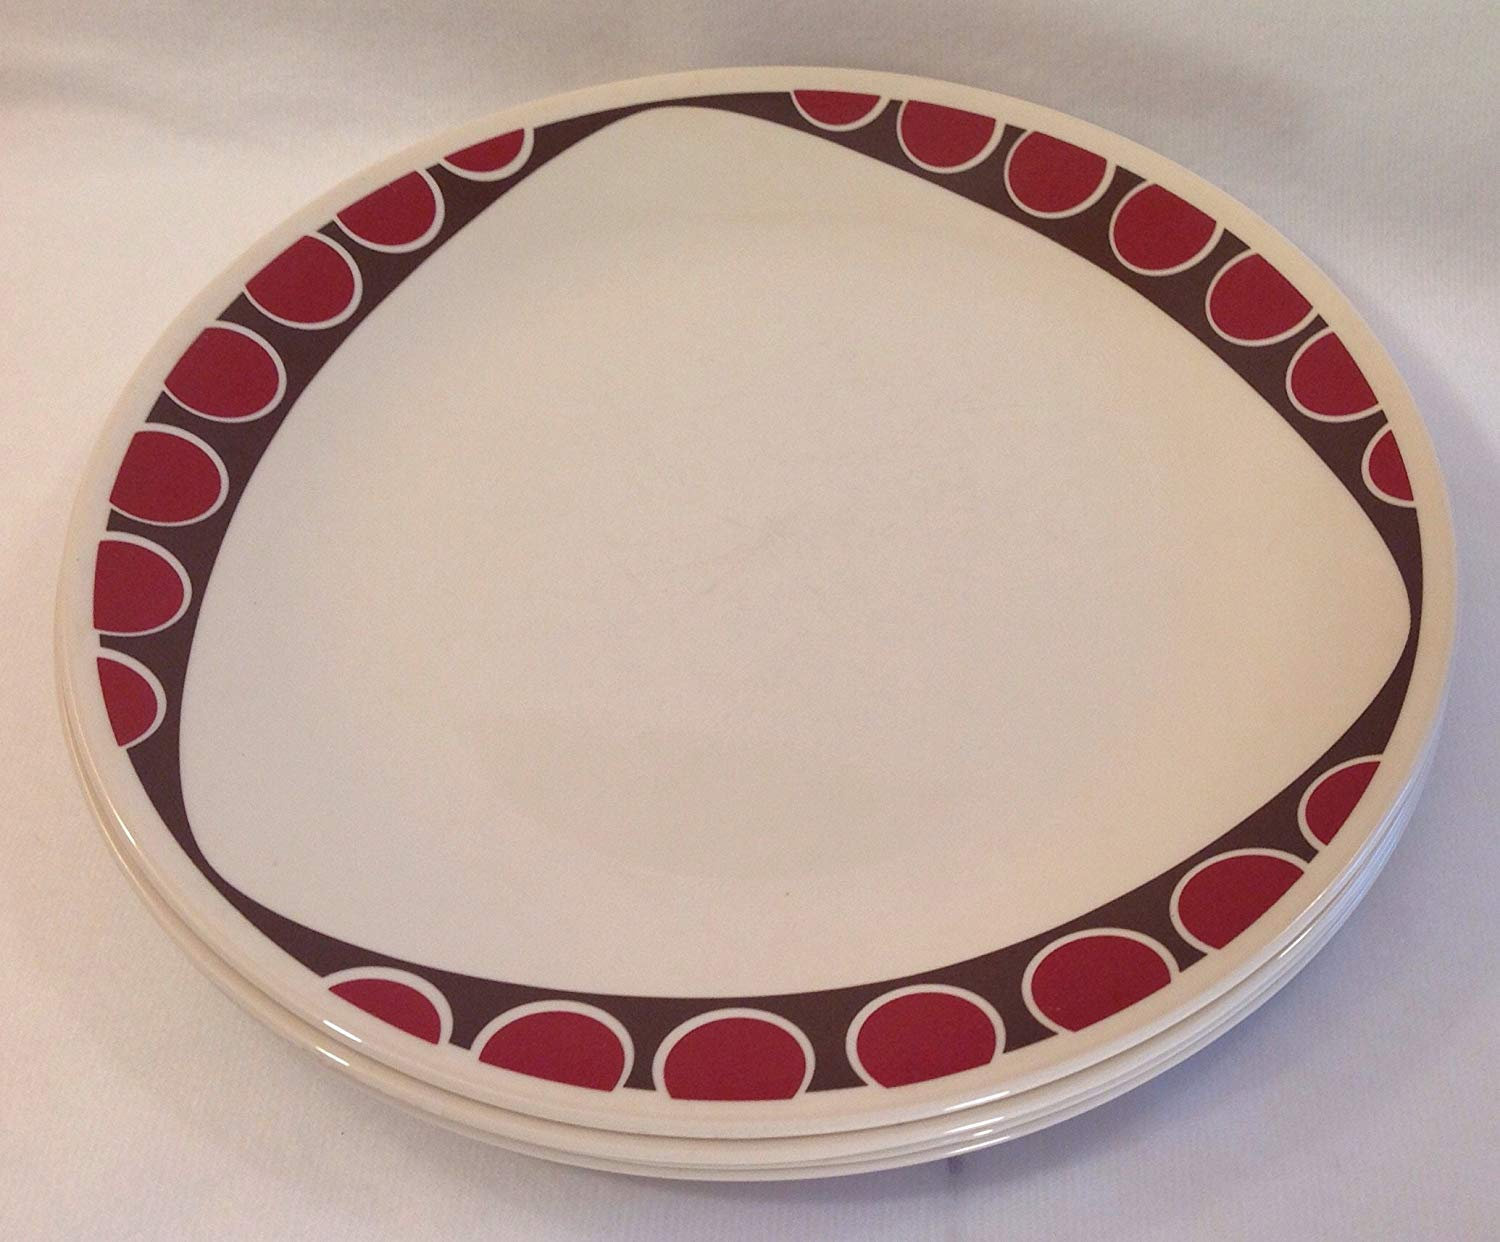 fascinating Corelle Luncheon Plates Open Stock Part - 5: Get Quotations · Corelle Kitu Pattern Dinner Plates Set of 4